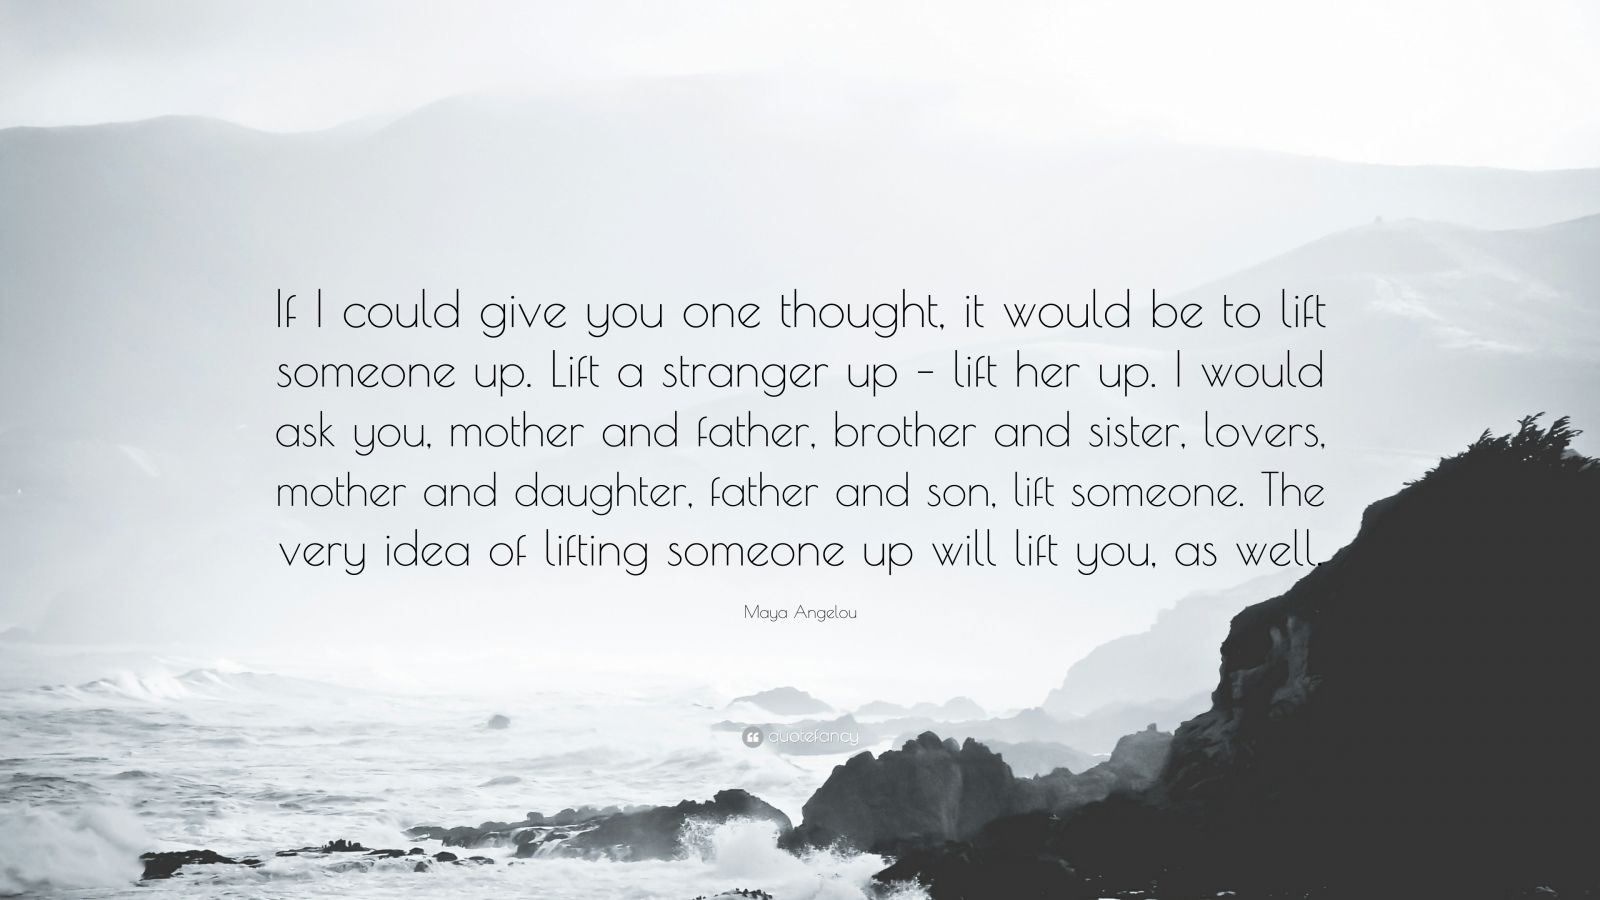 "Maya Angelou Quote: ""If I could give you one thought, it would be to lift someone up. Lift a stranger up – lift her up. I would ask you, mother and father, brother and sister, lovers, mother and daughter, father and son, lift someone. The very idea of lifting someone up will lift you, as well."""